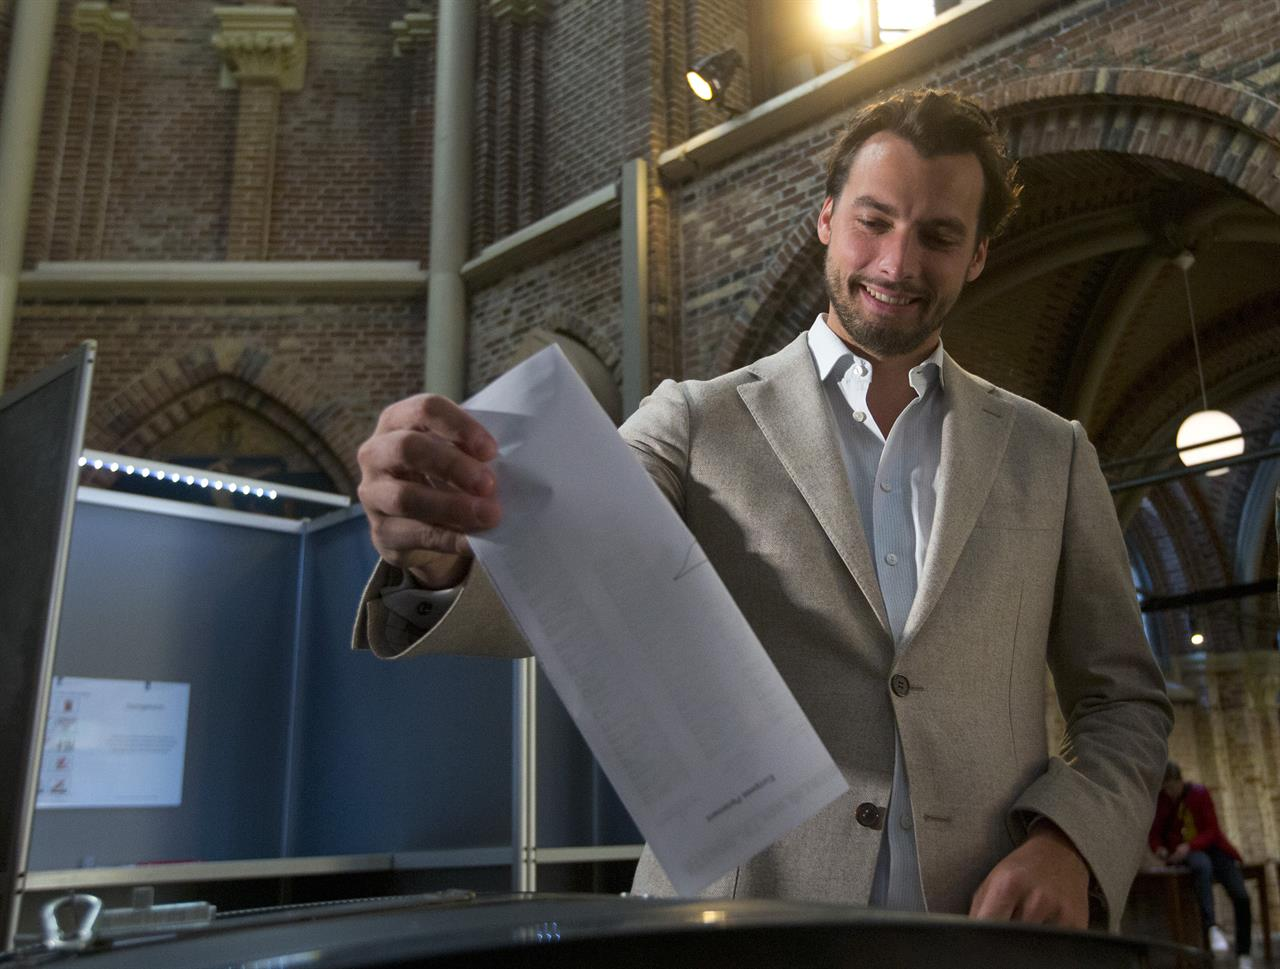 FILE - In this file photo dated  Thursday, May 23, 2019, Thierry Baudet, leader of the populist party Forum for Democracy, casts his ballot for the European elections in Amsterdam, Netherlands,.   The leader of a Dutch right-wing populist party, Thierry Baudet said Monday Nov. 23, 2020, he would not lead it into parliamentary elections in March 2021 amid unrest caused by a report of far-right messages being exchanged by members of the party's youth wing. (AP Photo/Peter Dejong, FILE)